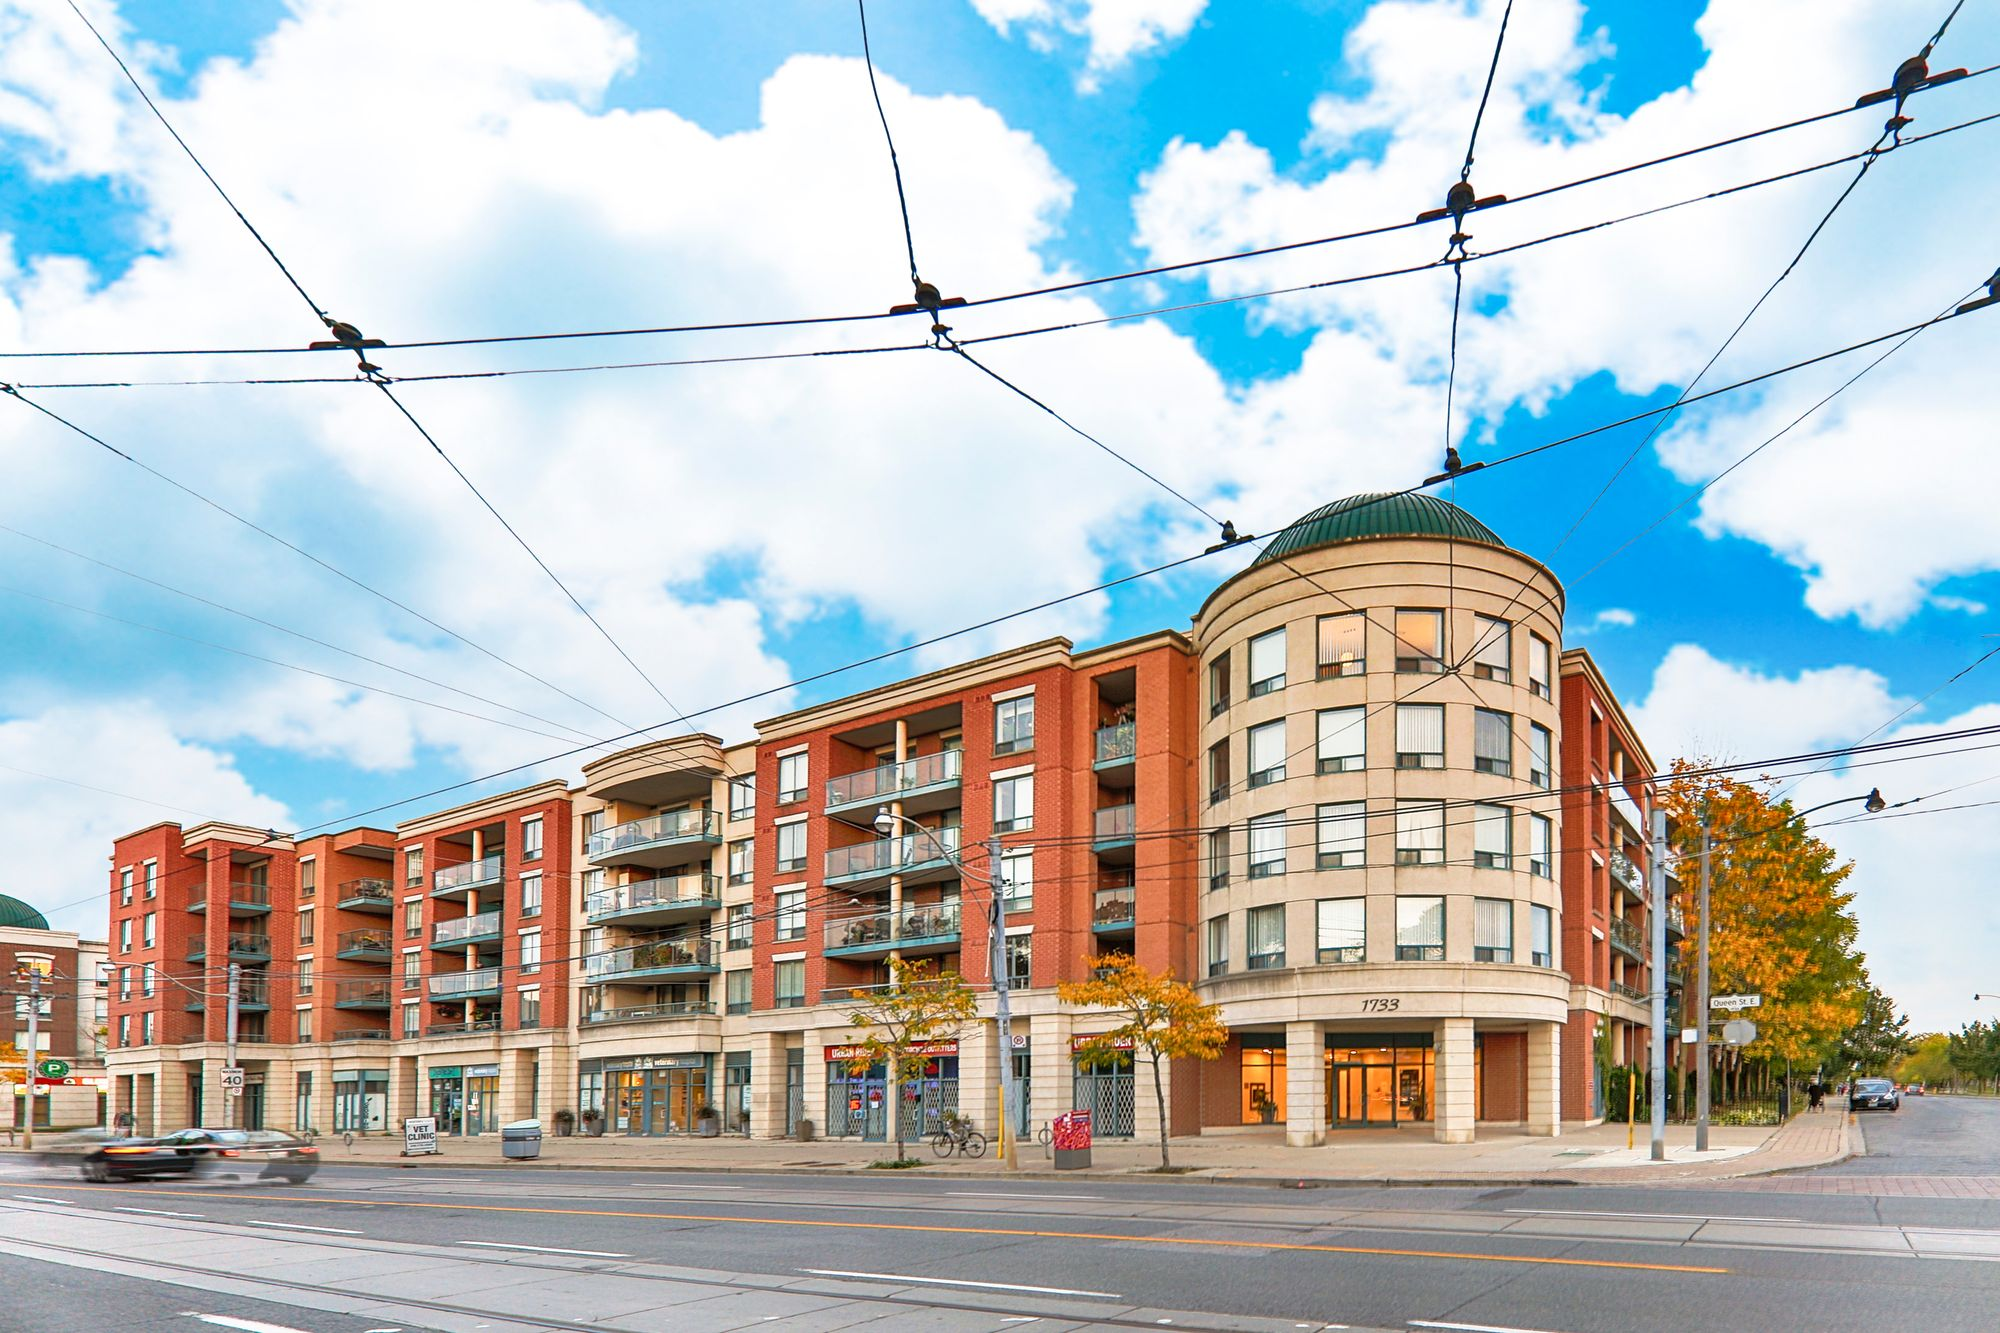 The Beach Condominiums IV at 1733 Queen St E. This condo is located in  East End, Toronto - image #2 of 5 by Strata.ca